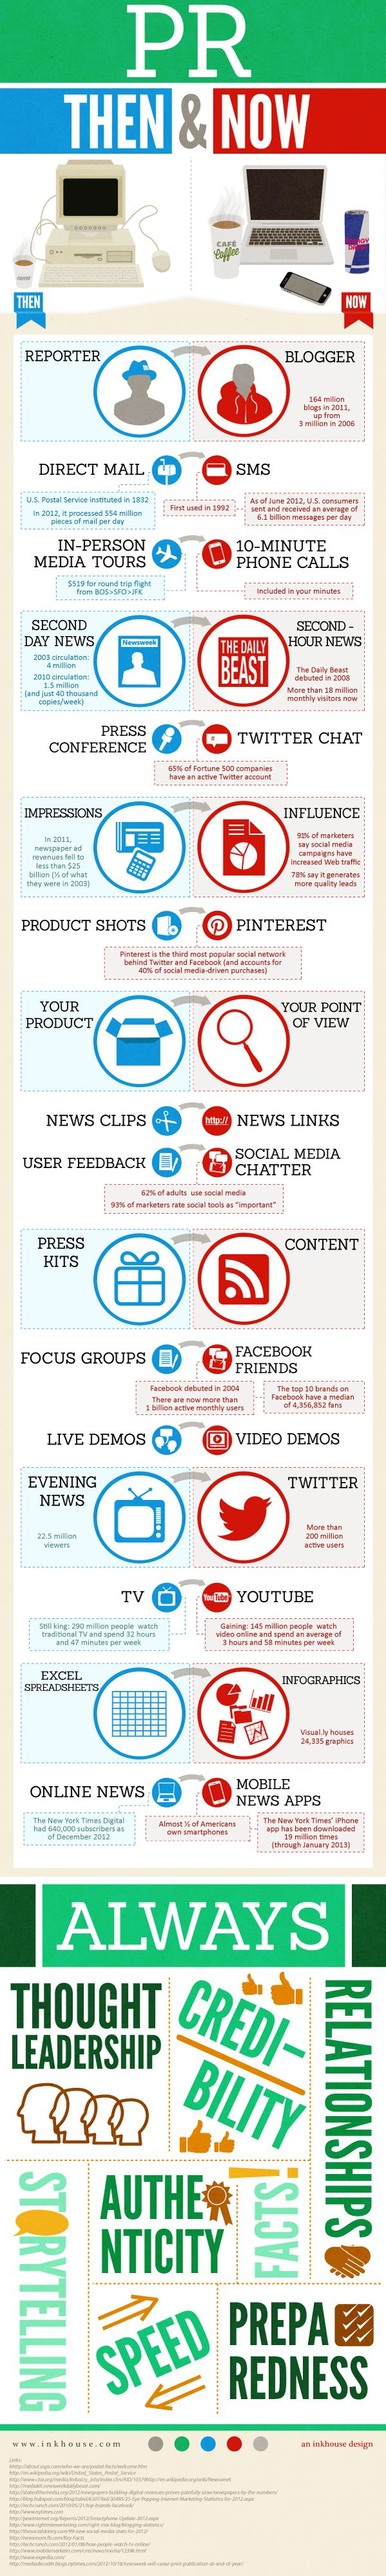 Social Media & PR: Then & Now. Great infographic detailing how digital media has shaped the public relations field.